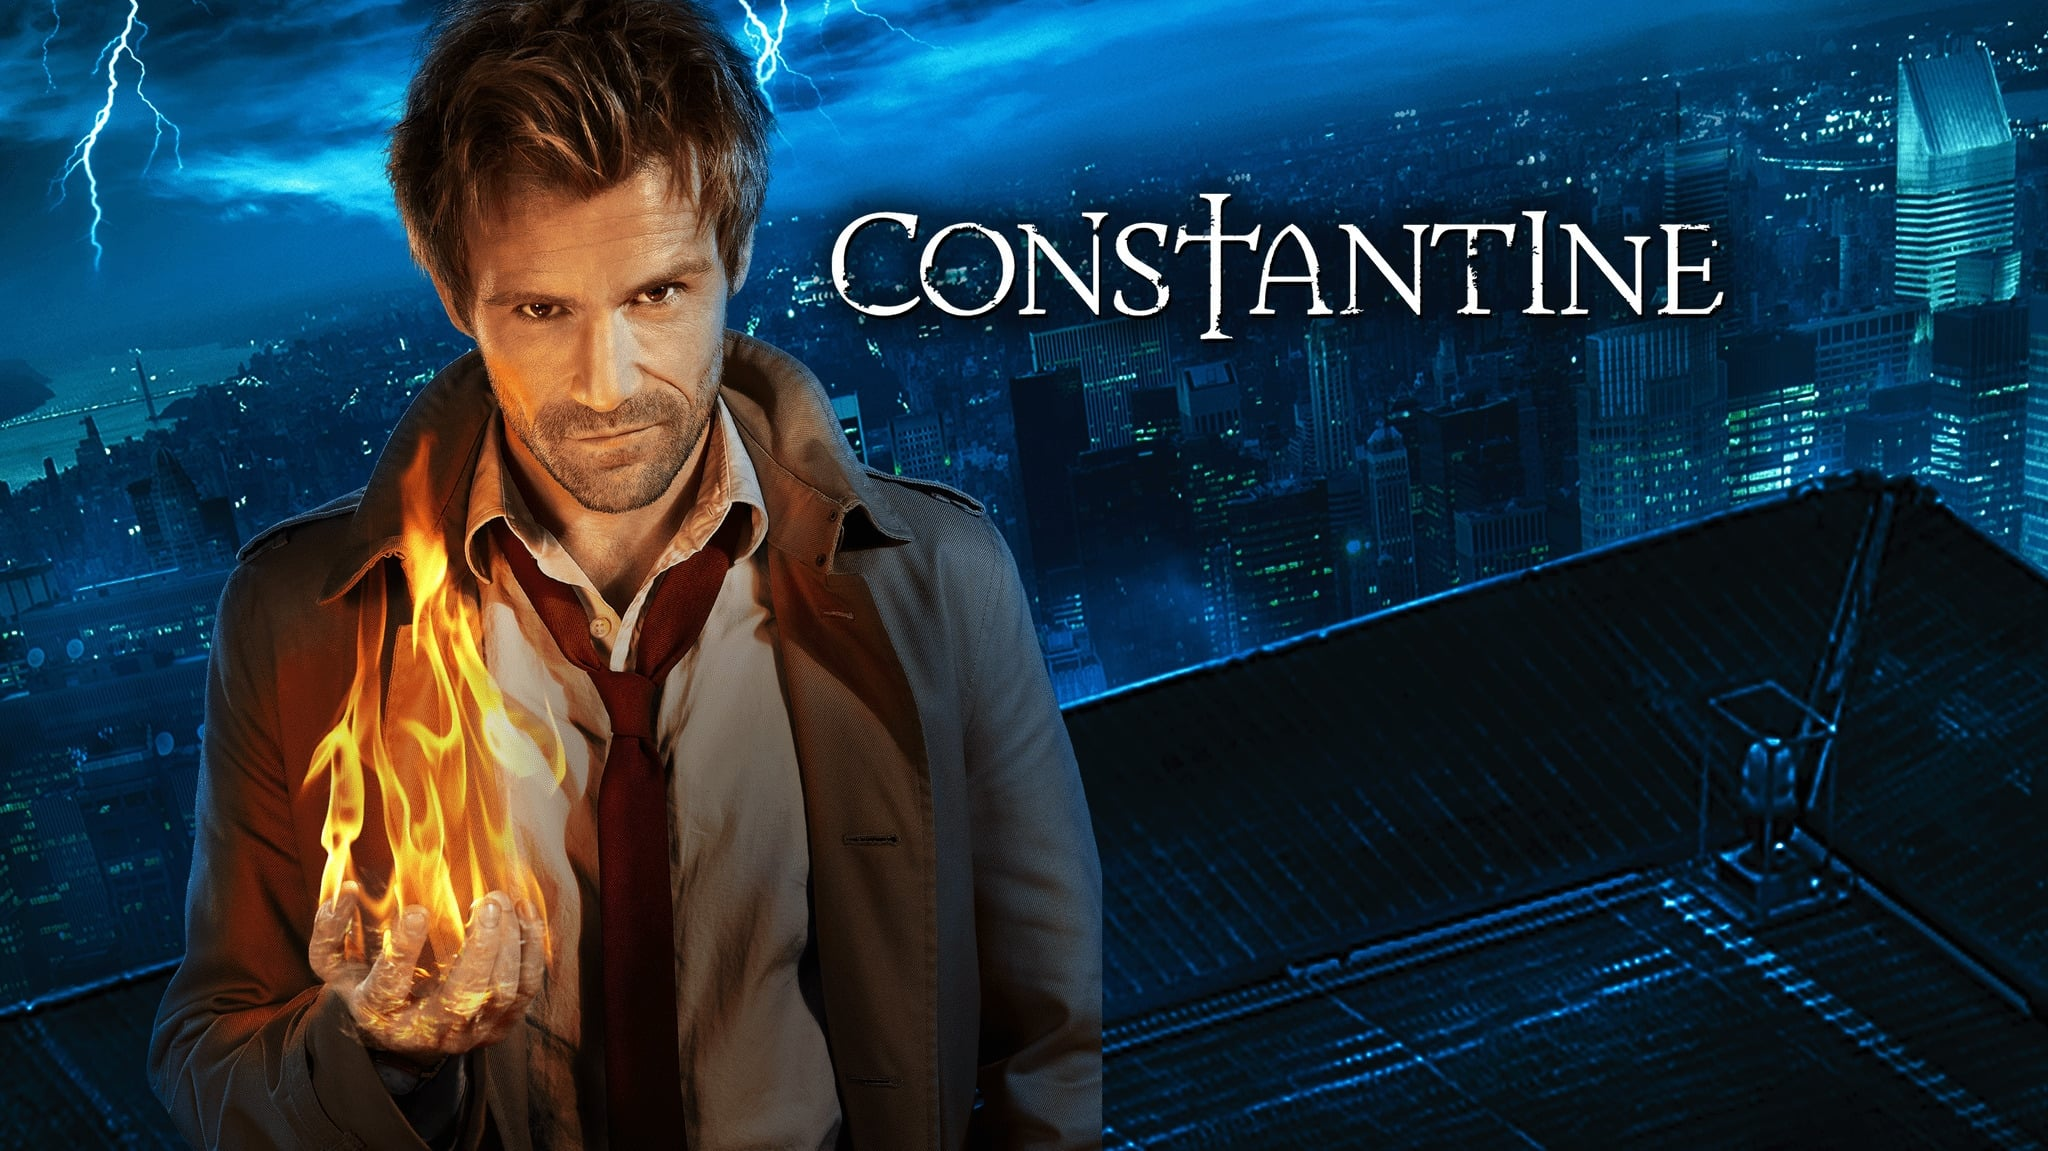 NBC cancelt Constantine, State of Affairs, Marry Me en About a Boy. Nieuw seizoen voor Undateable, The Mysteries of Laura en The Night Shift